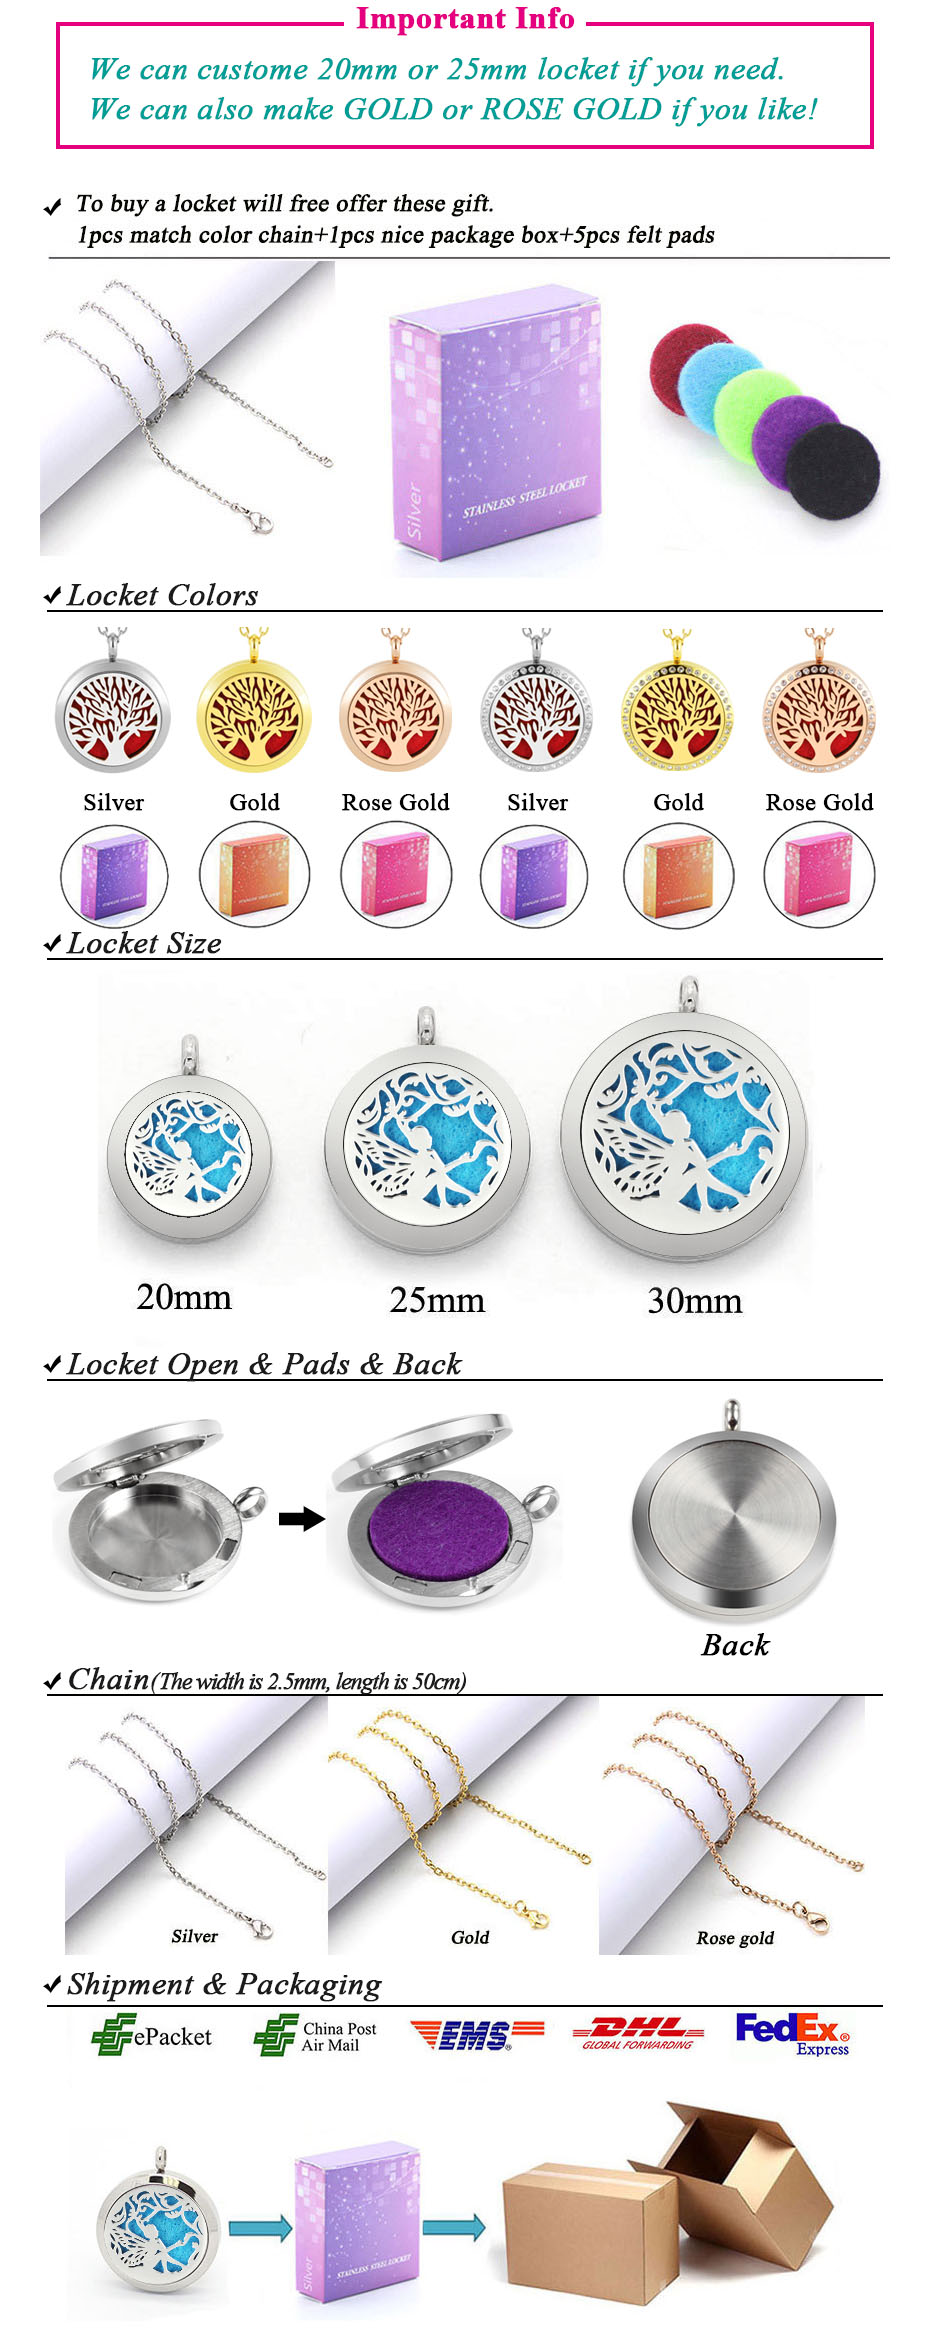 fair diffuser necklaces silver gold rose gold 20mm 25mm 30mm locket jewelry -219 (7)